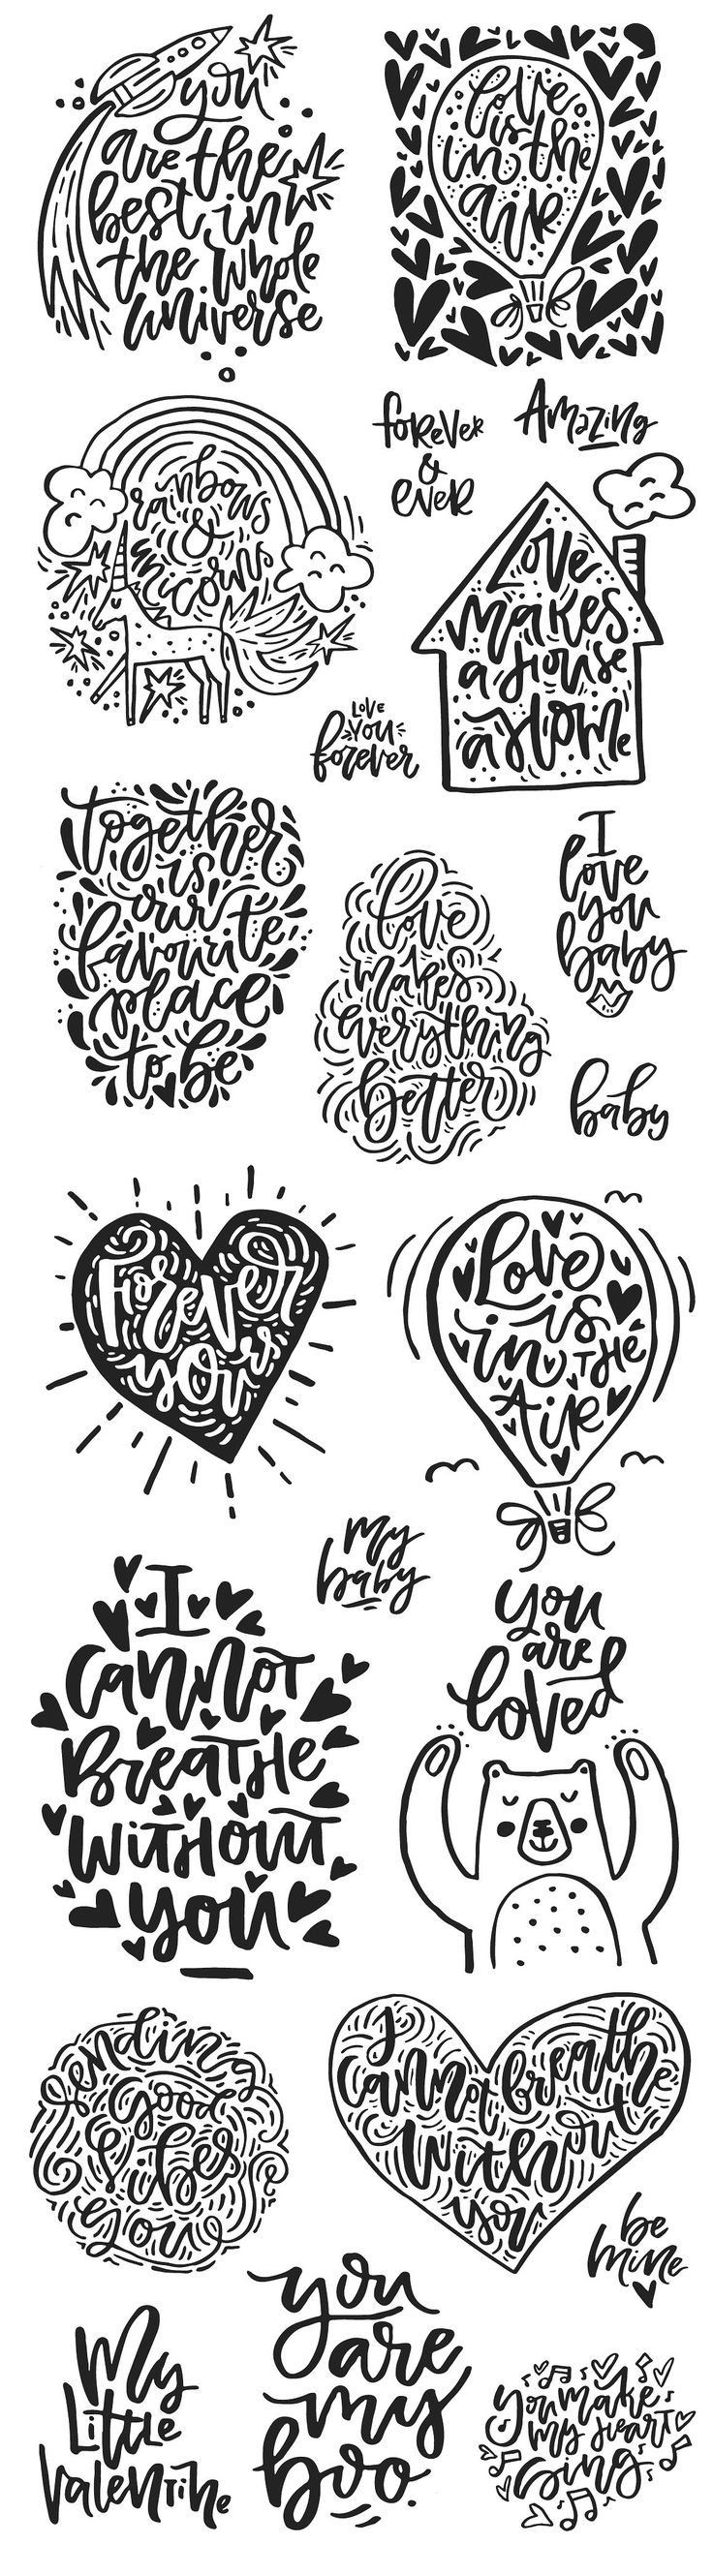 Valentine's Day Lettering Pack - Illustrations #lettering #vintage #overlay #quote #love #photo #handmade #DIY #photoshop #png #greeting #card #vector #photobook